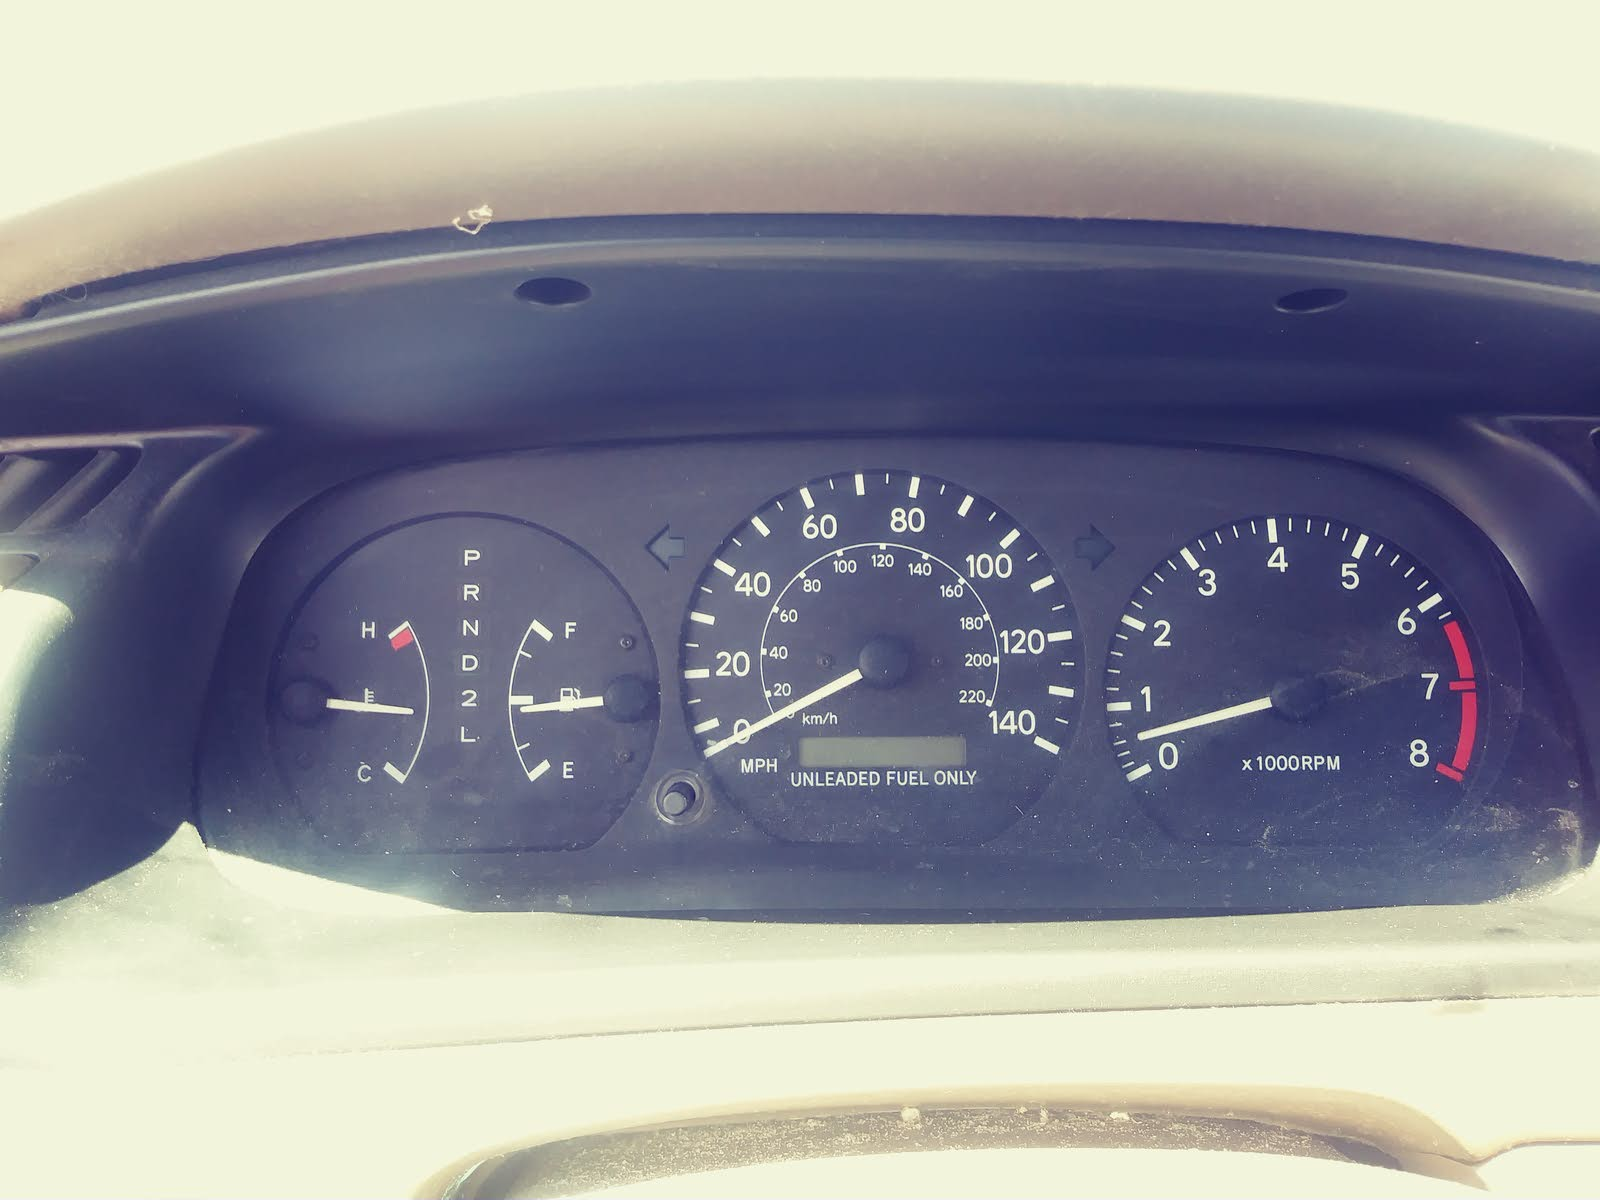 Toyota Camry Questions 1999 Speedometer Odometer Not Working Amp Gauge Mounting Problems Transmission Slipping Cargurus